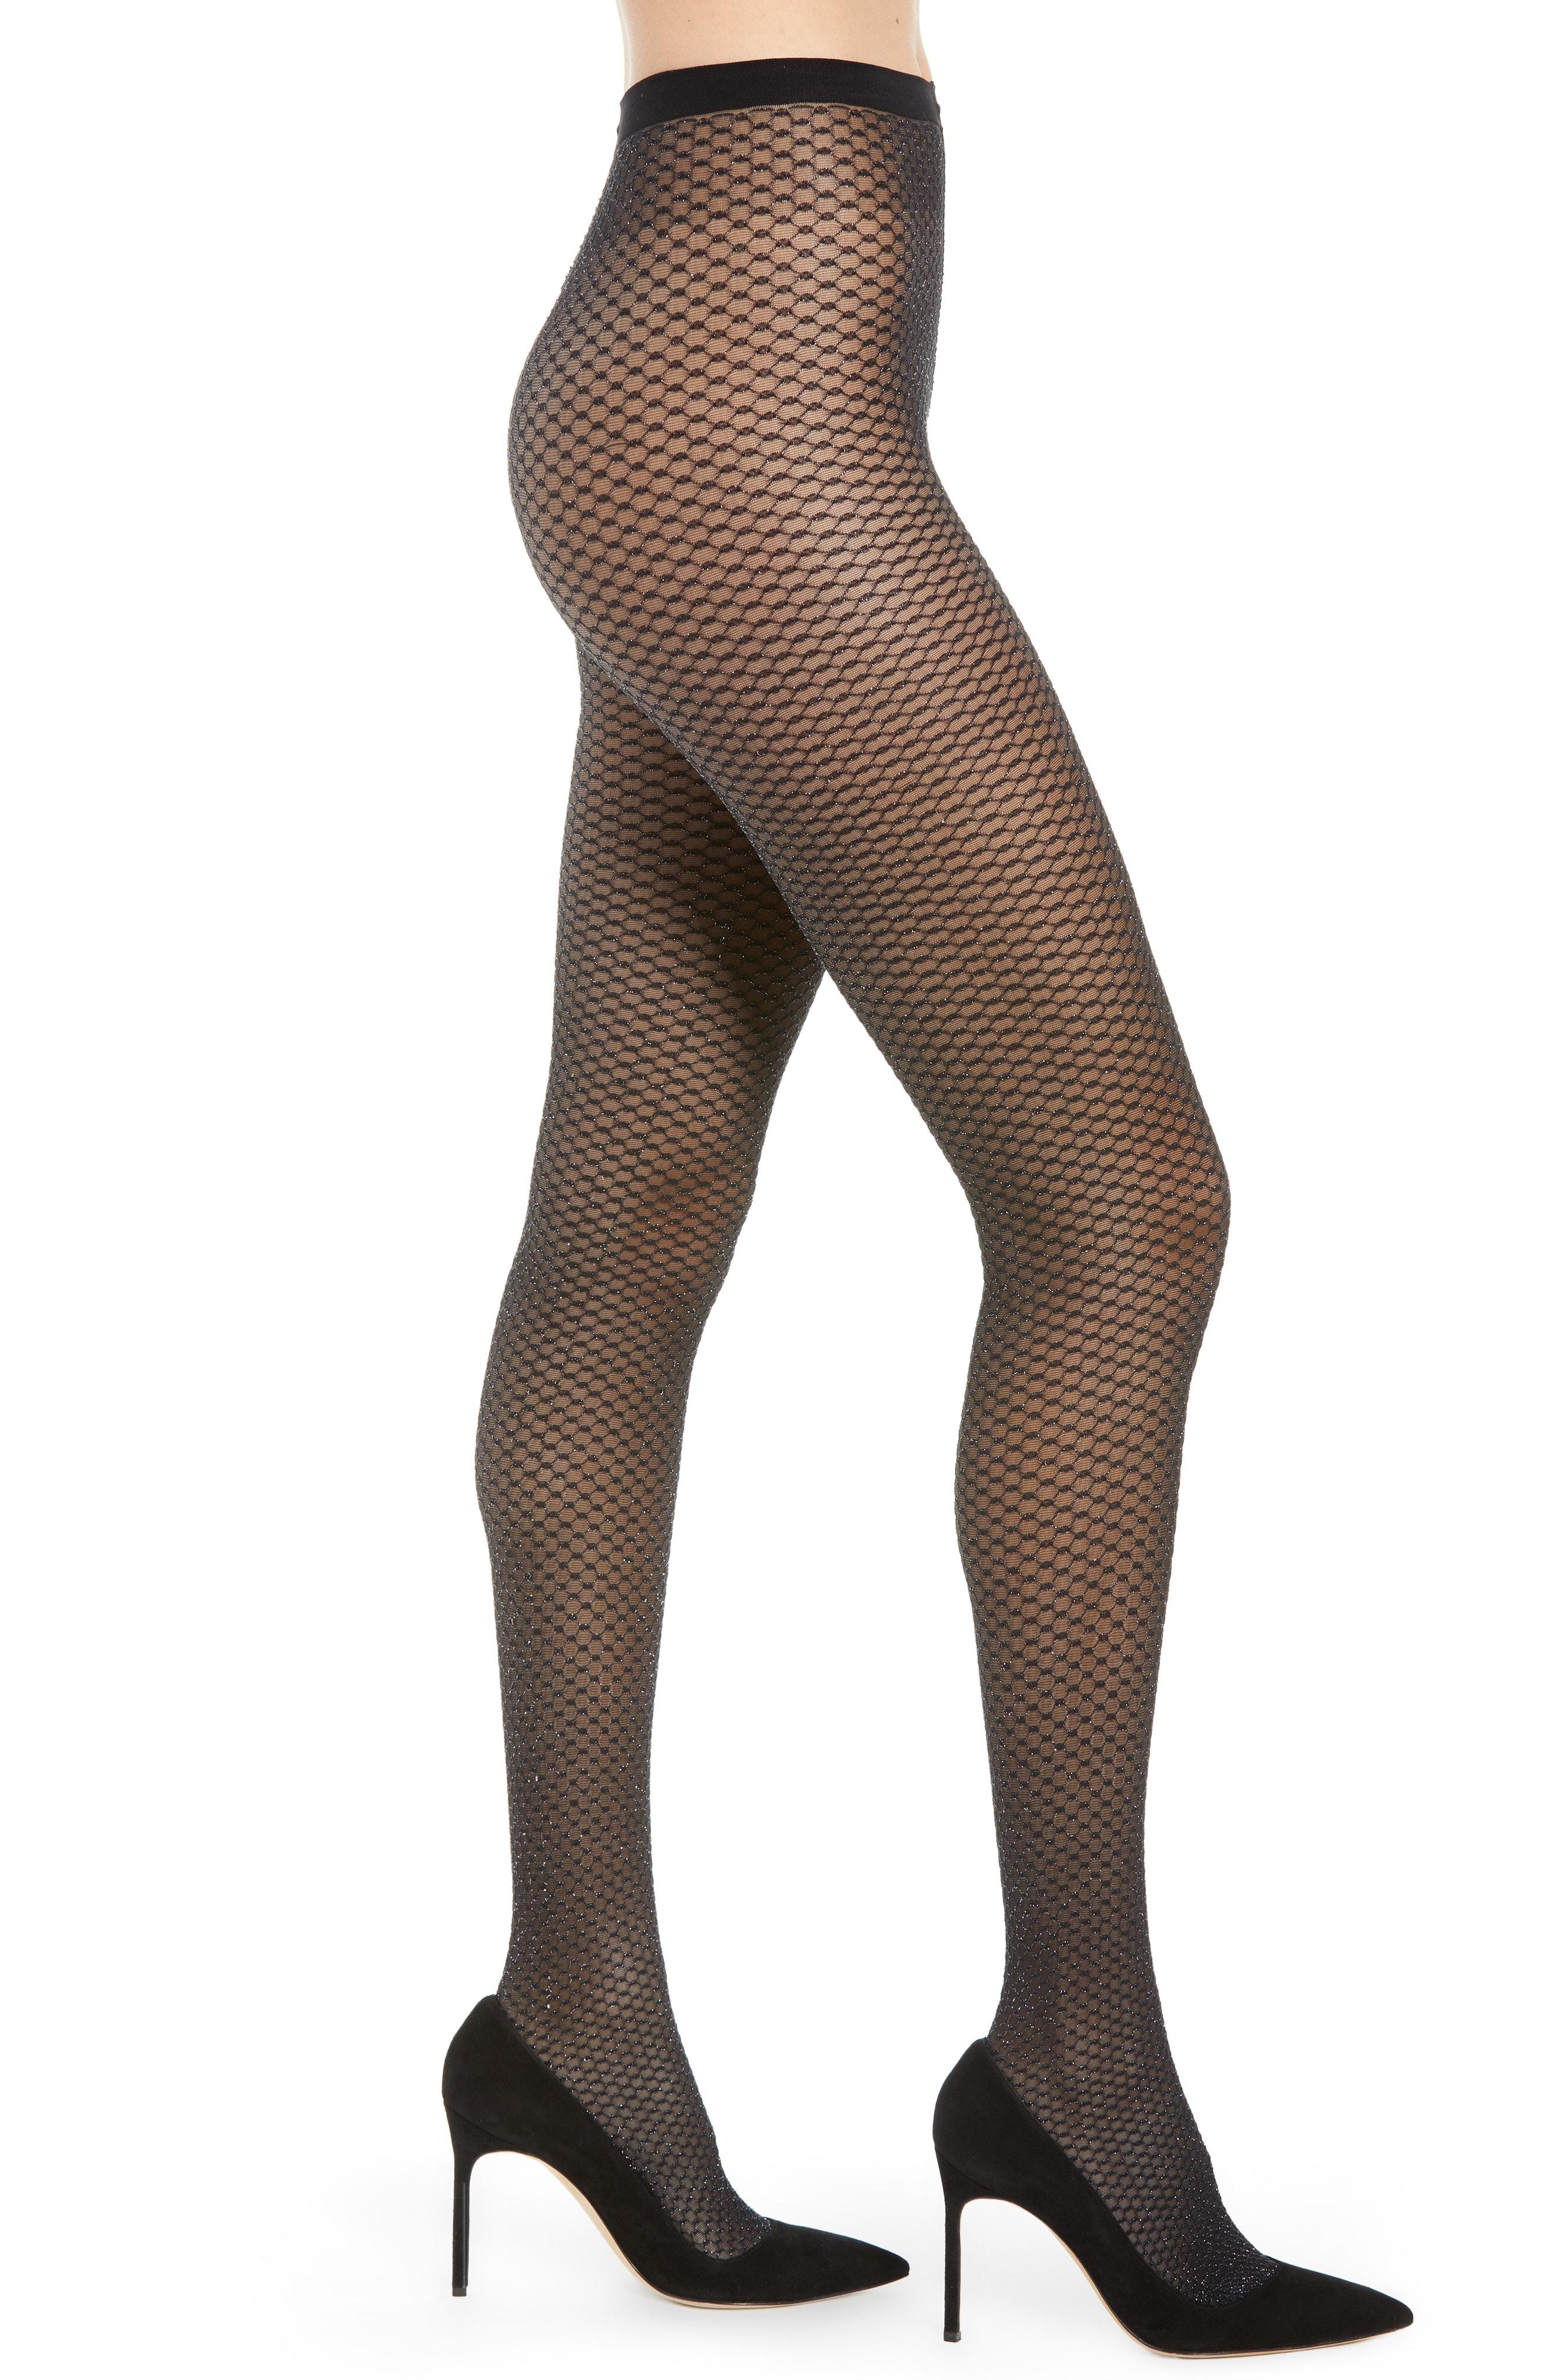 963ce16611f1c Wolford. Women's Night Sparkle Fishnet Tights